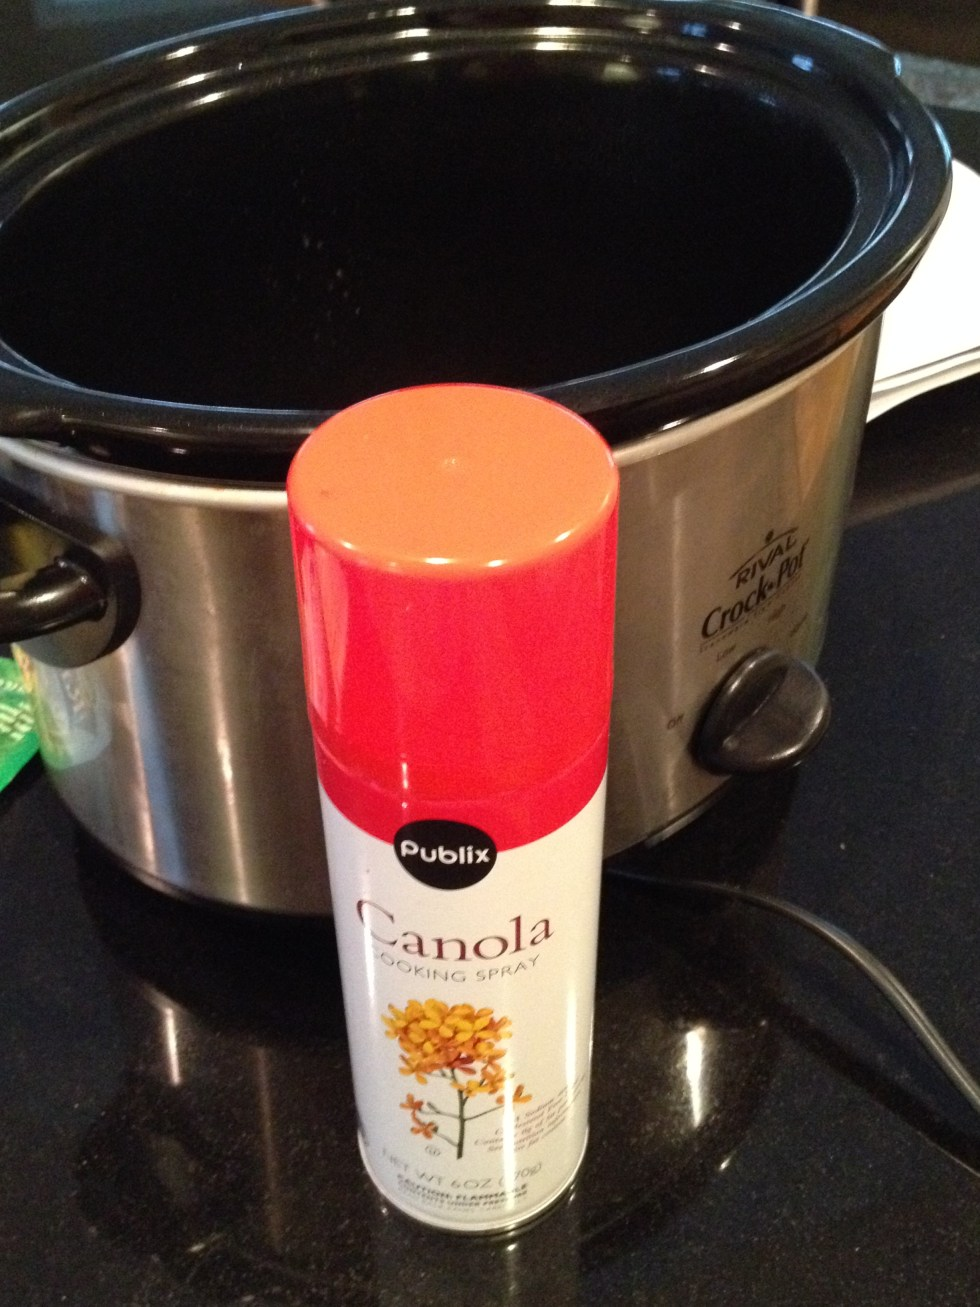 Spray crock pot with cooking spray - makes for easier clean up.